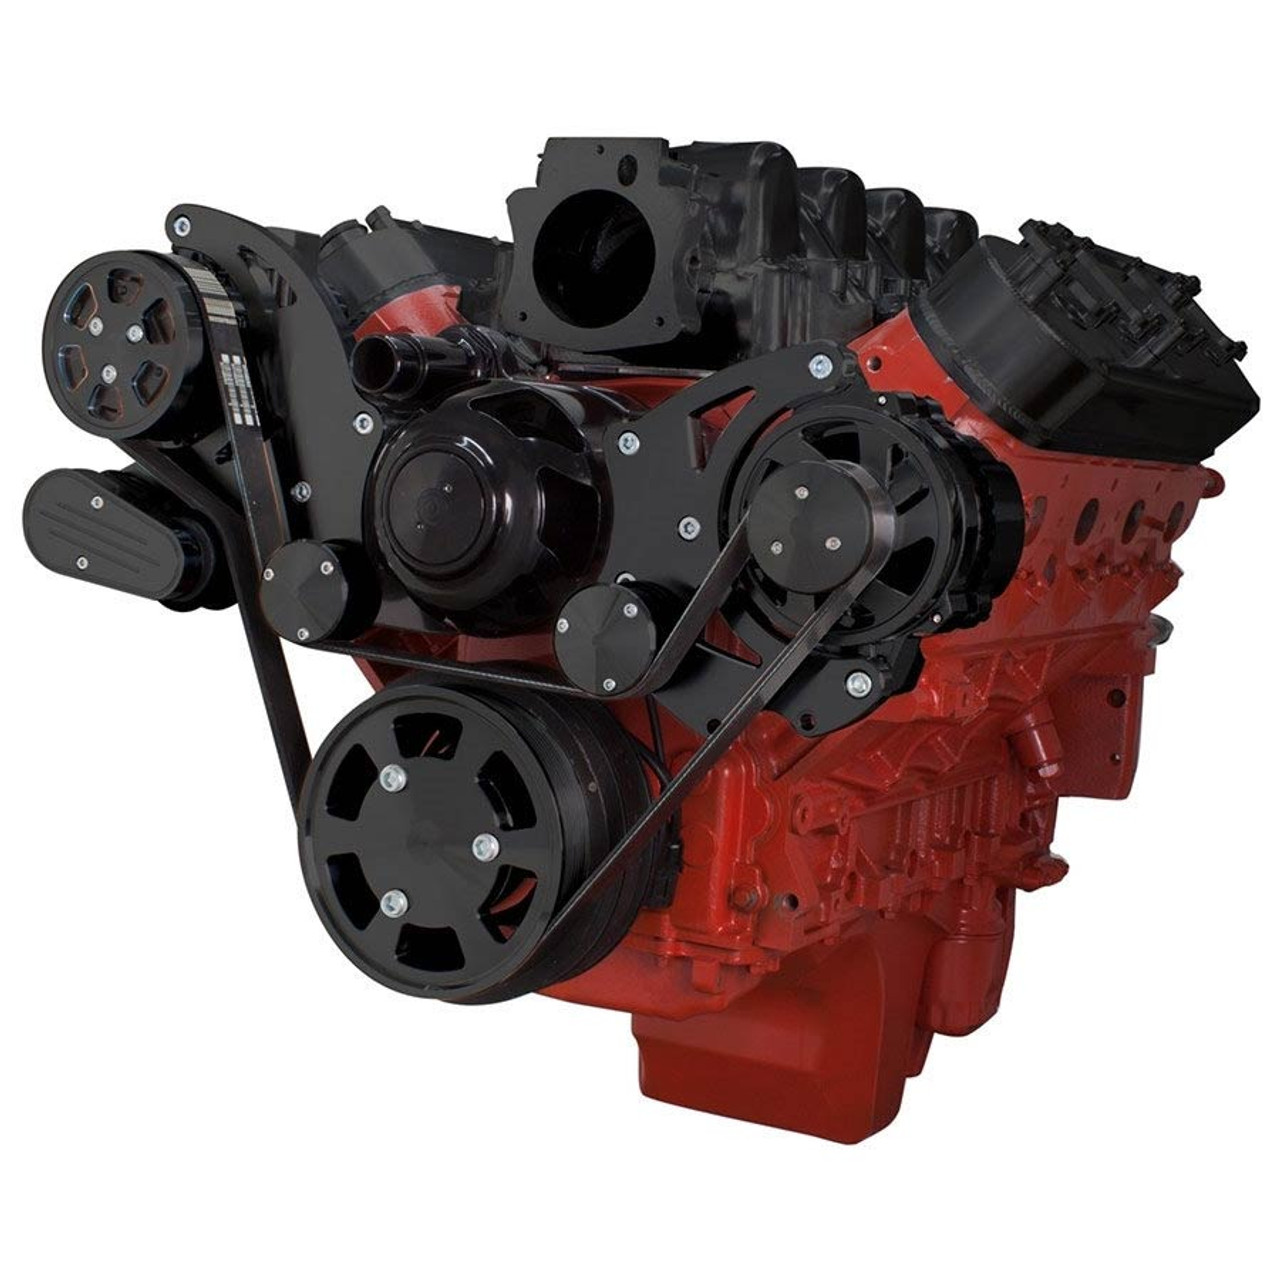 stealth black chevy ls engine serpentine kit alternator only with electric water pump [ 900 x 900 Pixel ]